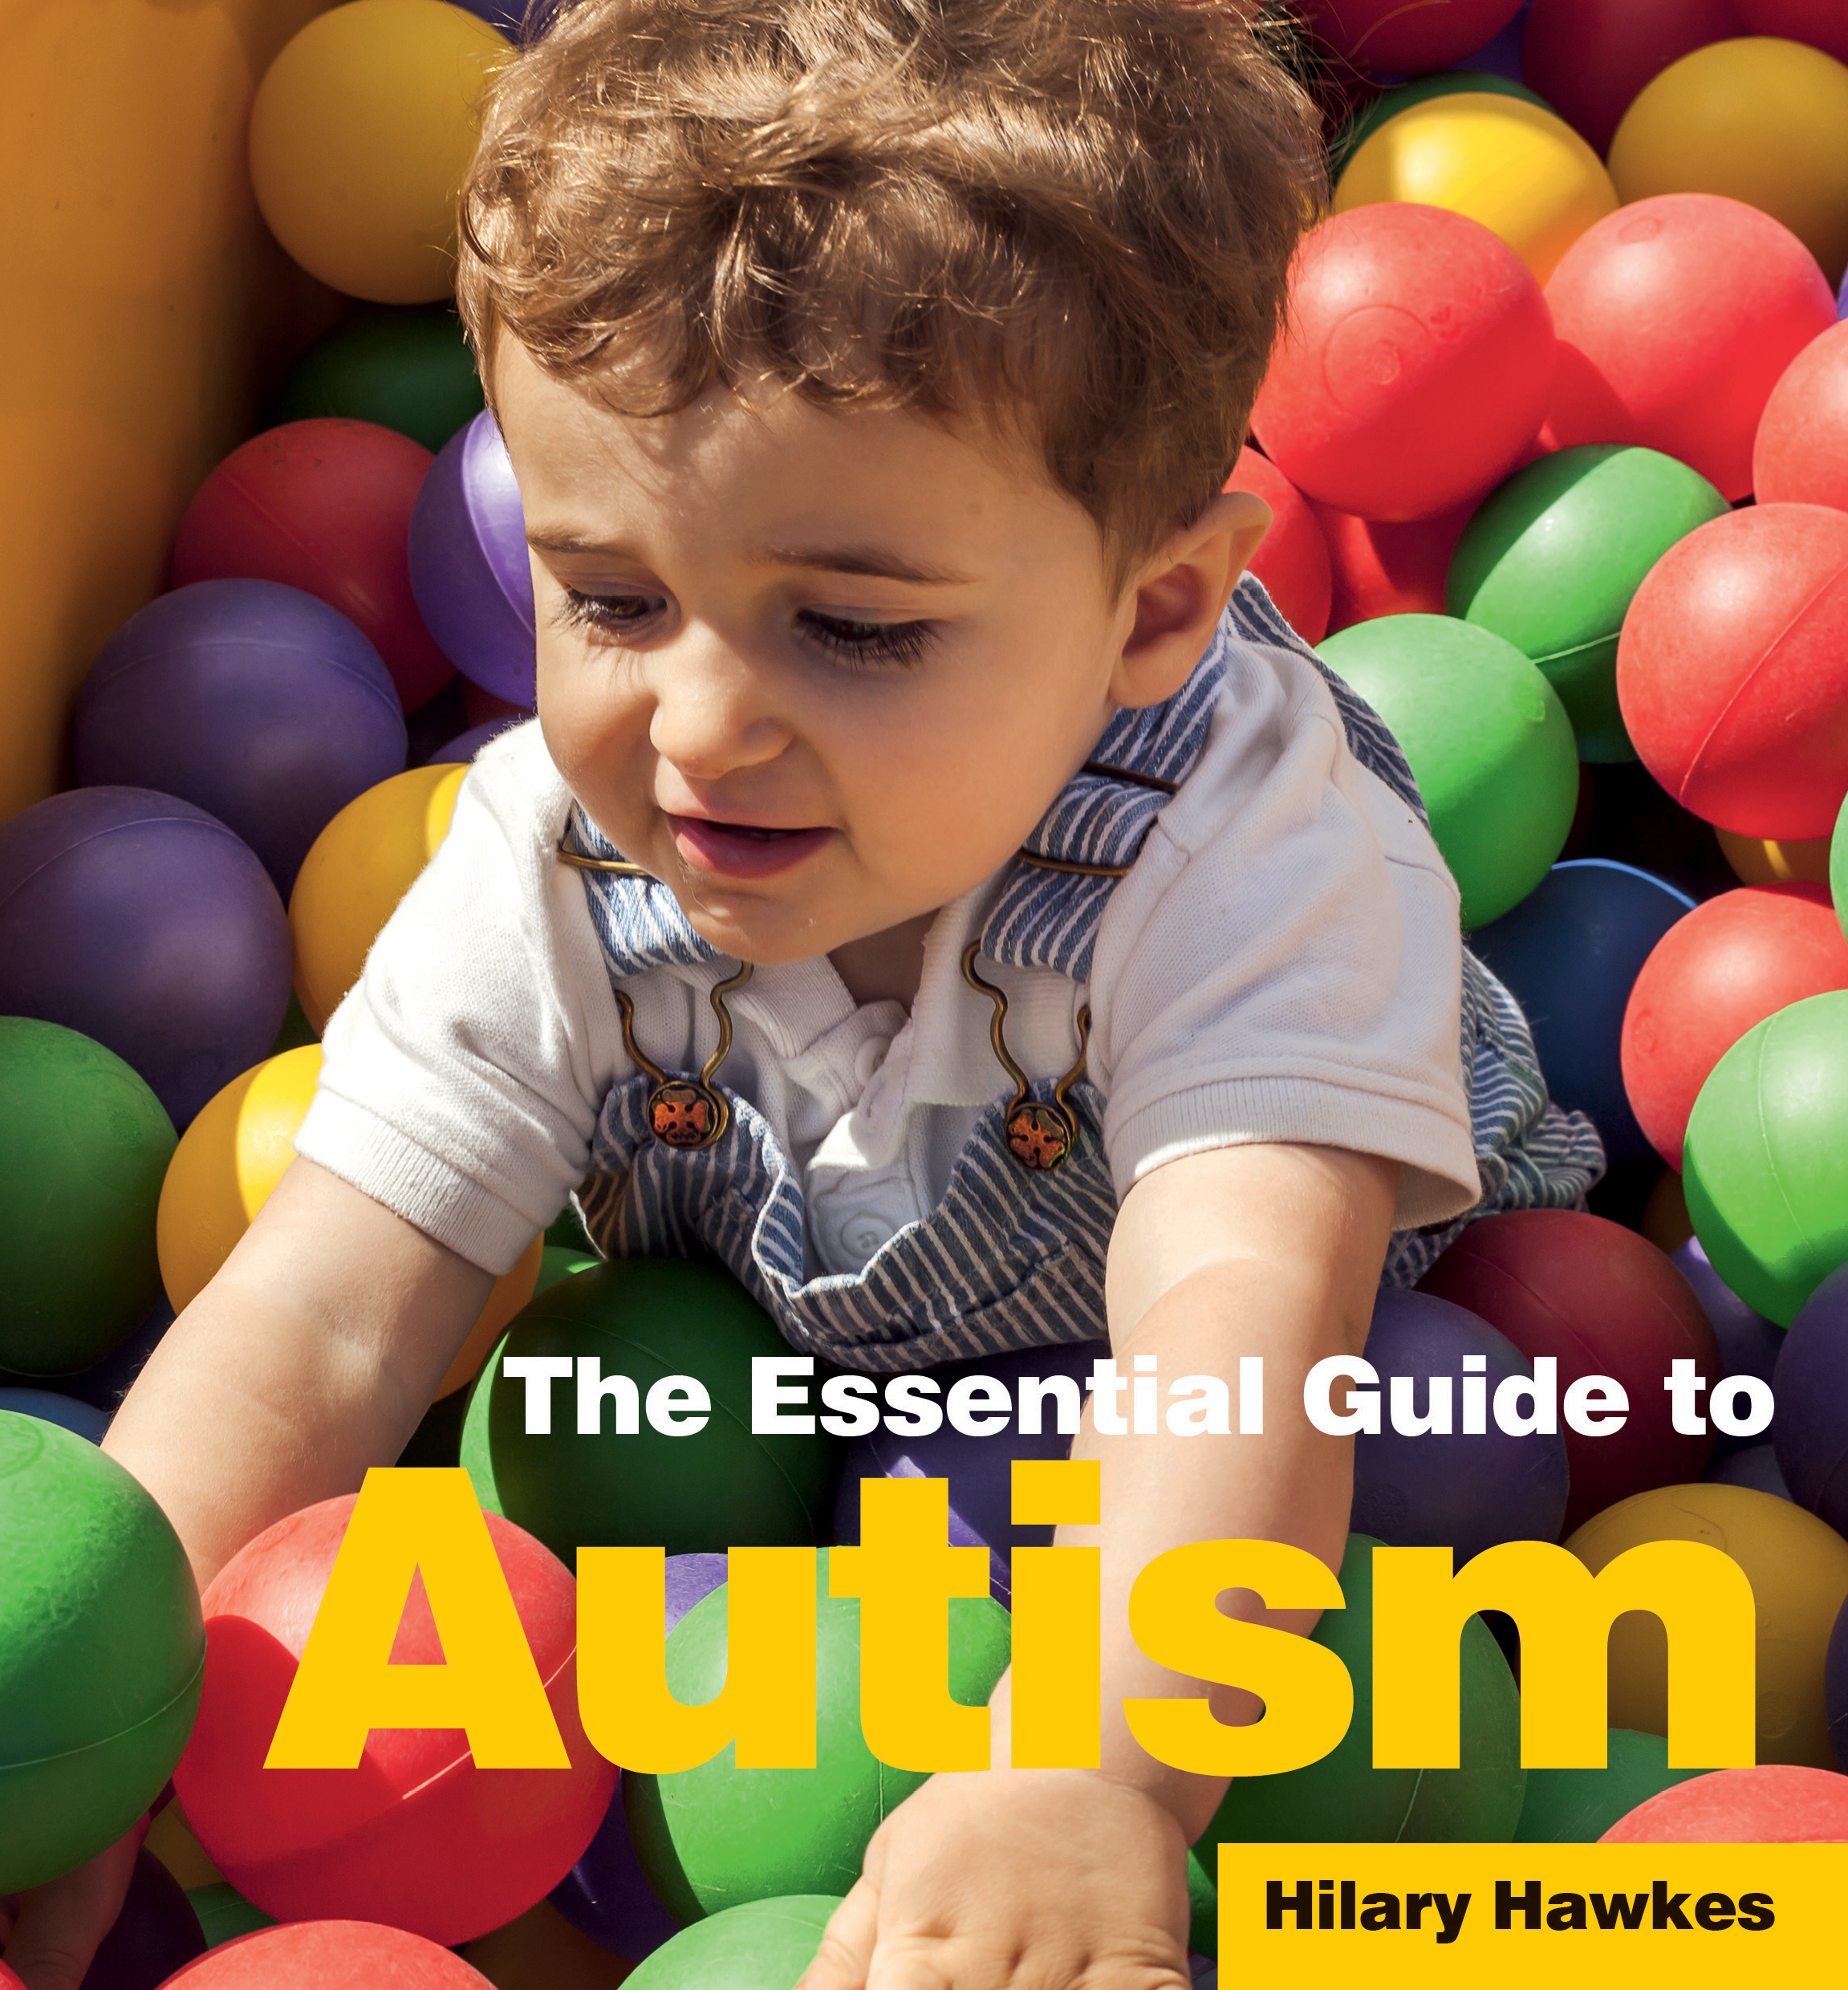 The Essential Guide To Autism